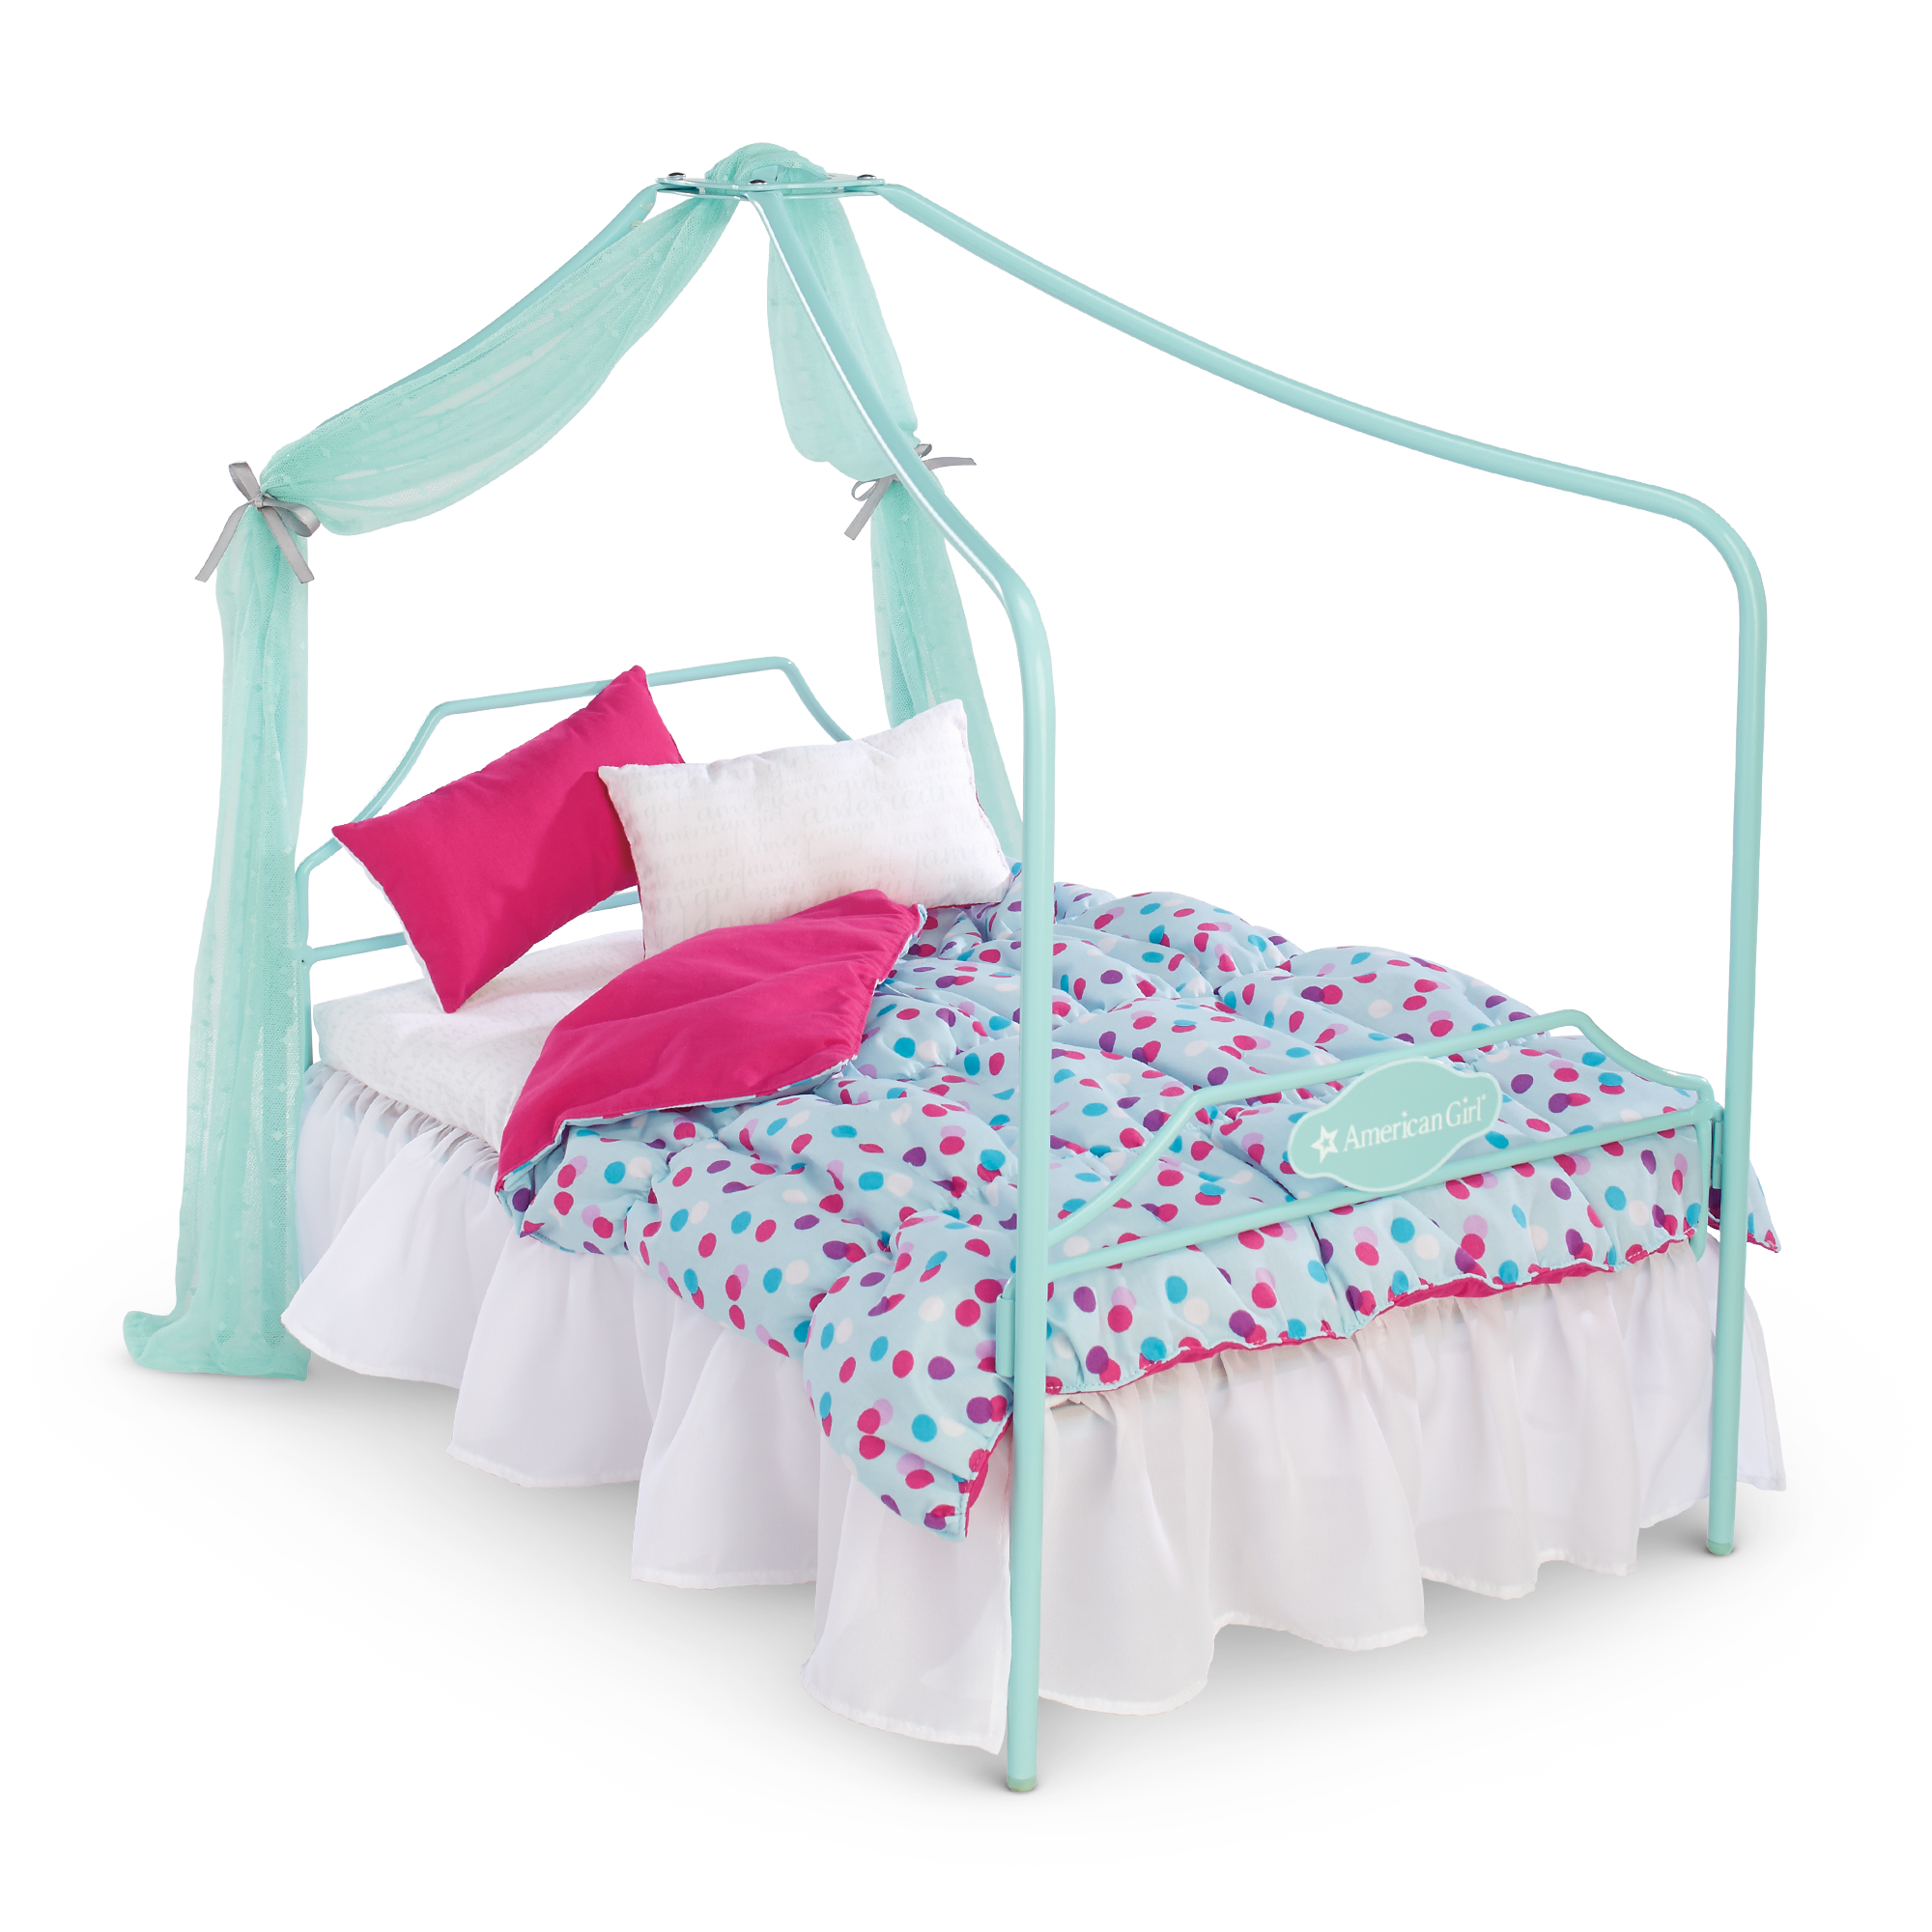 Girl In Bedroom Png Free Girl In Bedroom Png Transparent Images 25801 Pngio